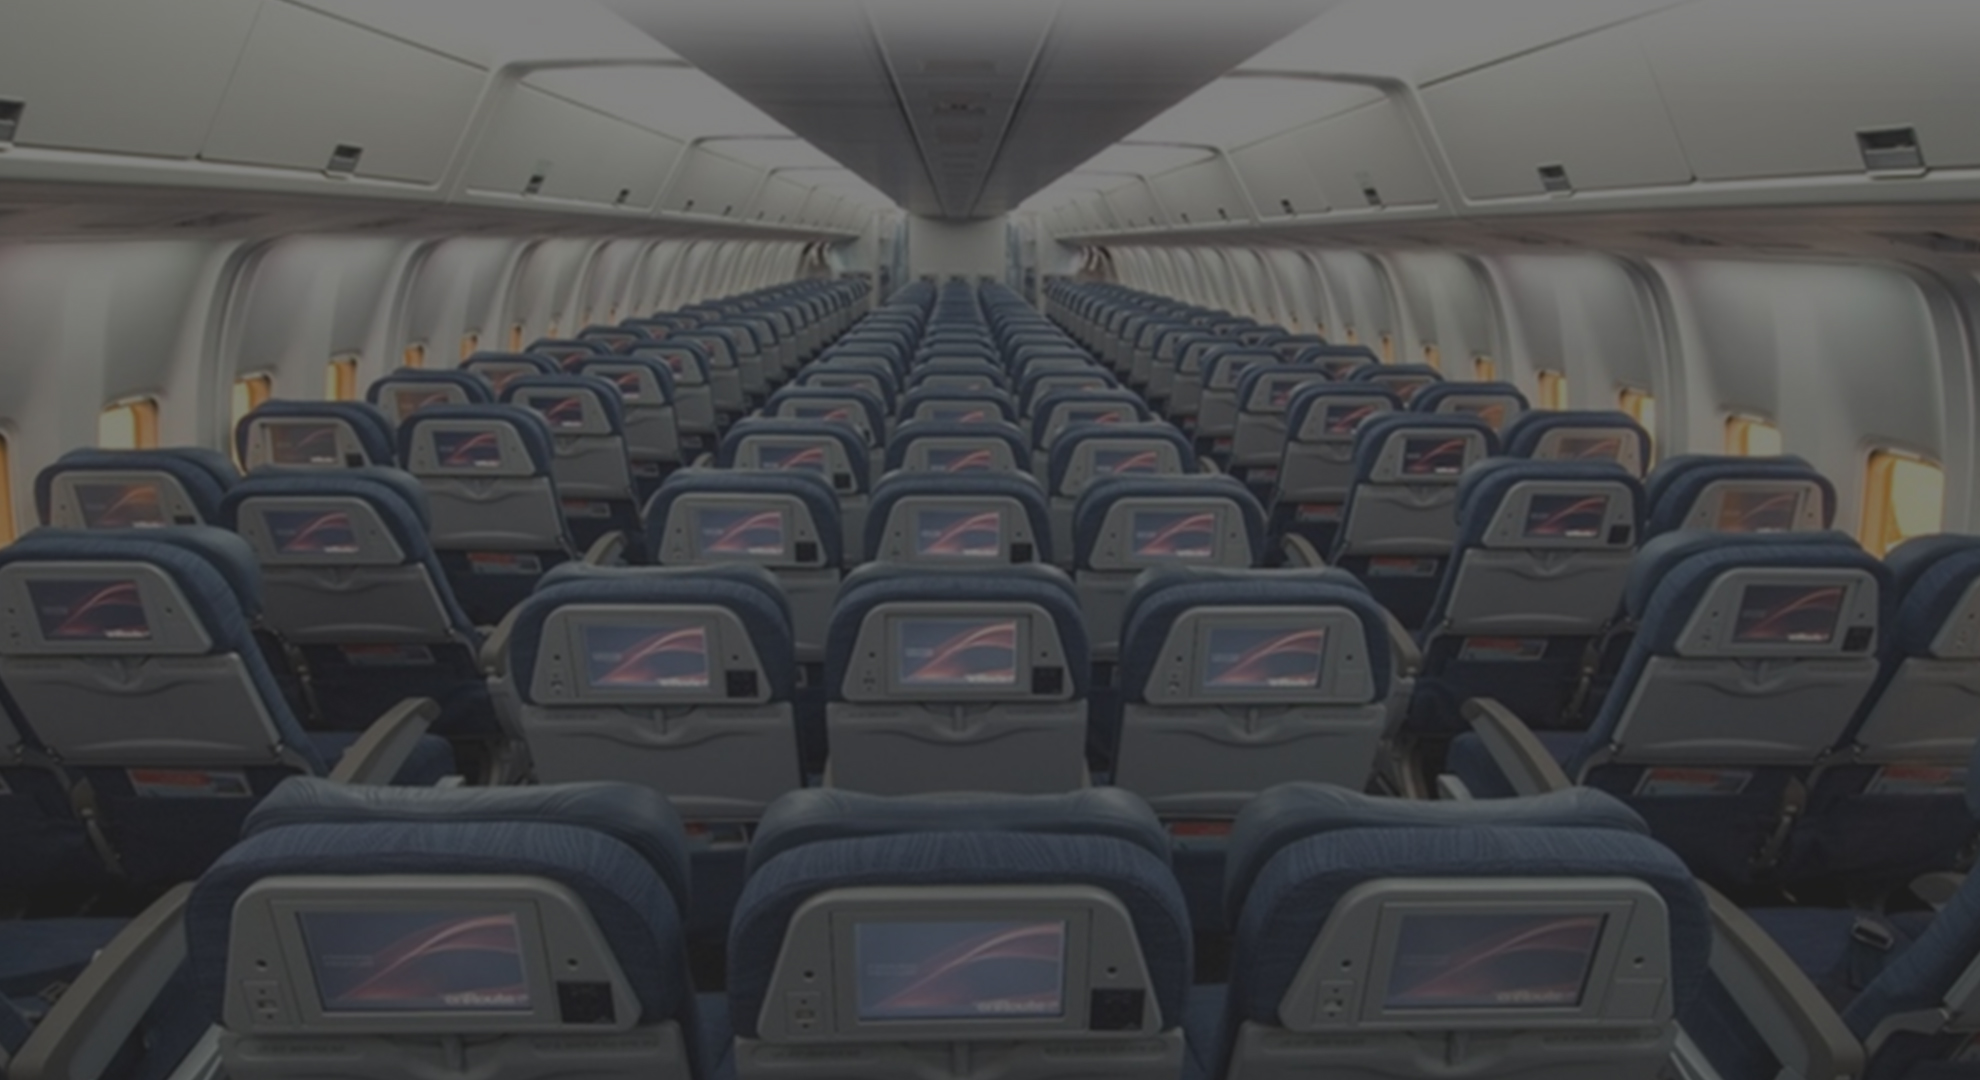 Aircraft Interiors Recycling Association recycles the whole interior of aircraft